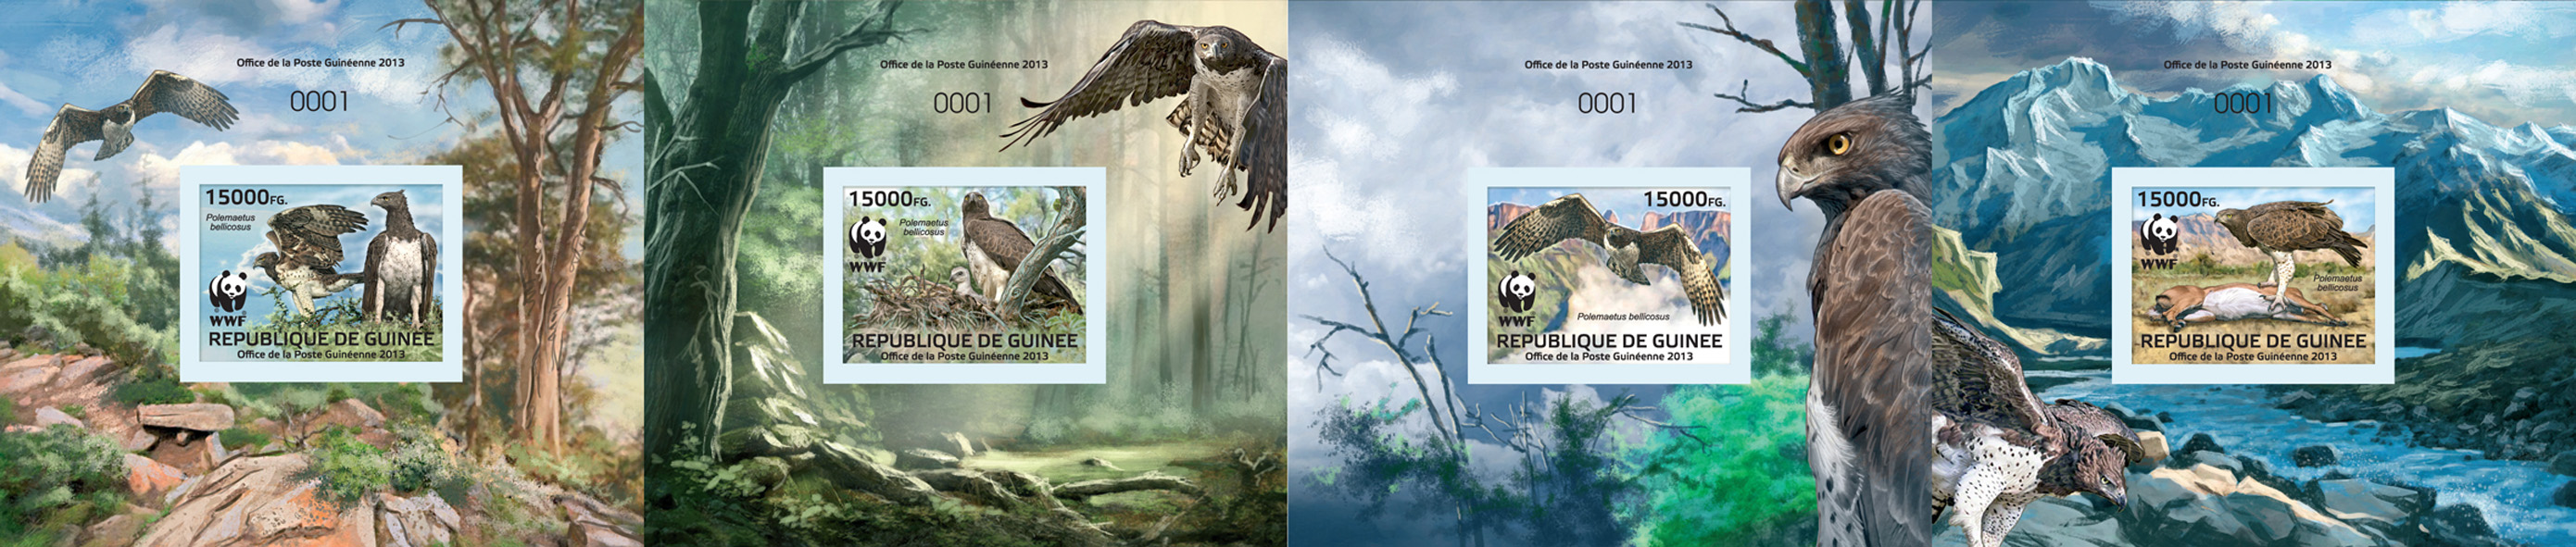 WWF - Birds of prey - Issue of Guinée postage stamps